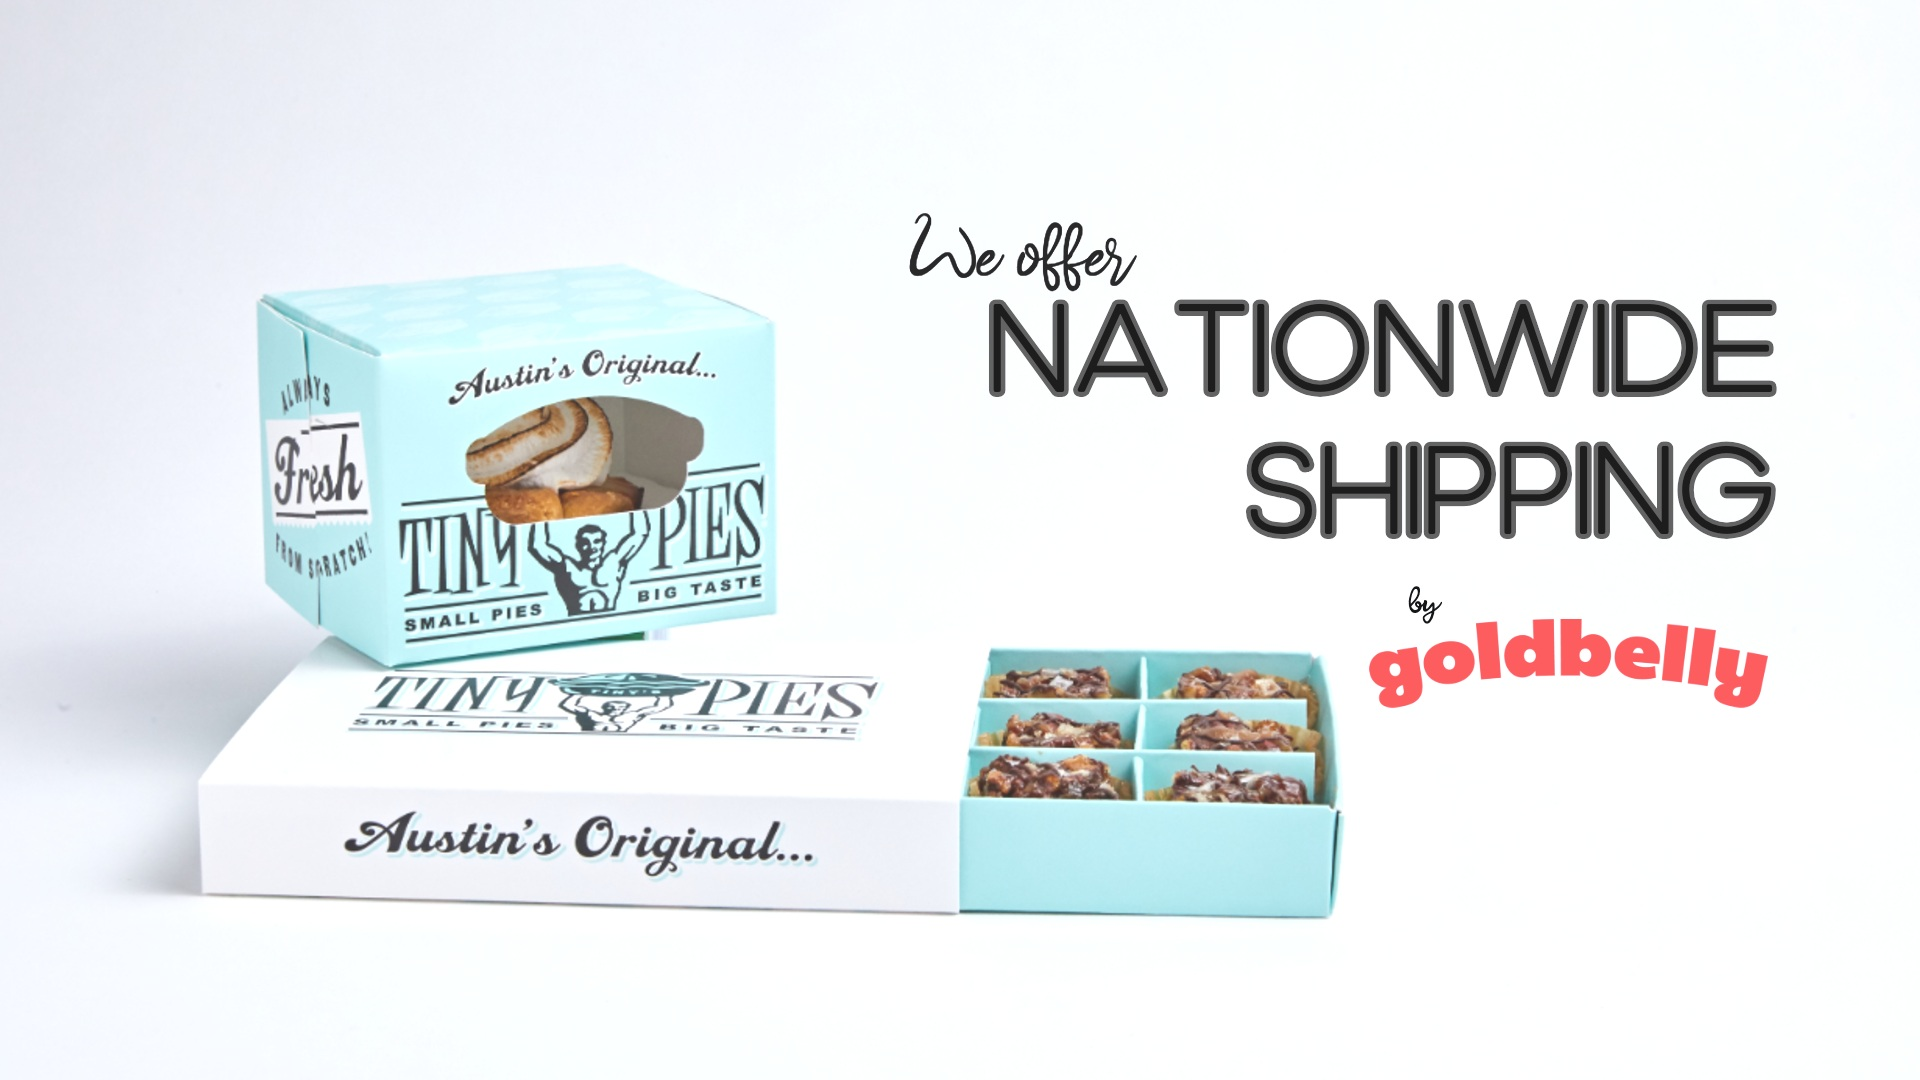 nationwide-shipping-web3.png